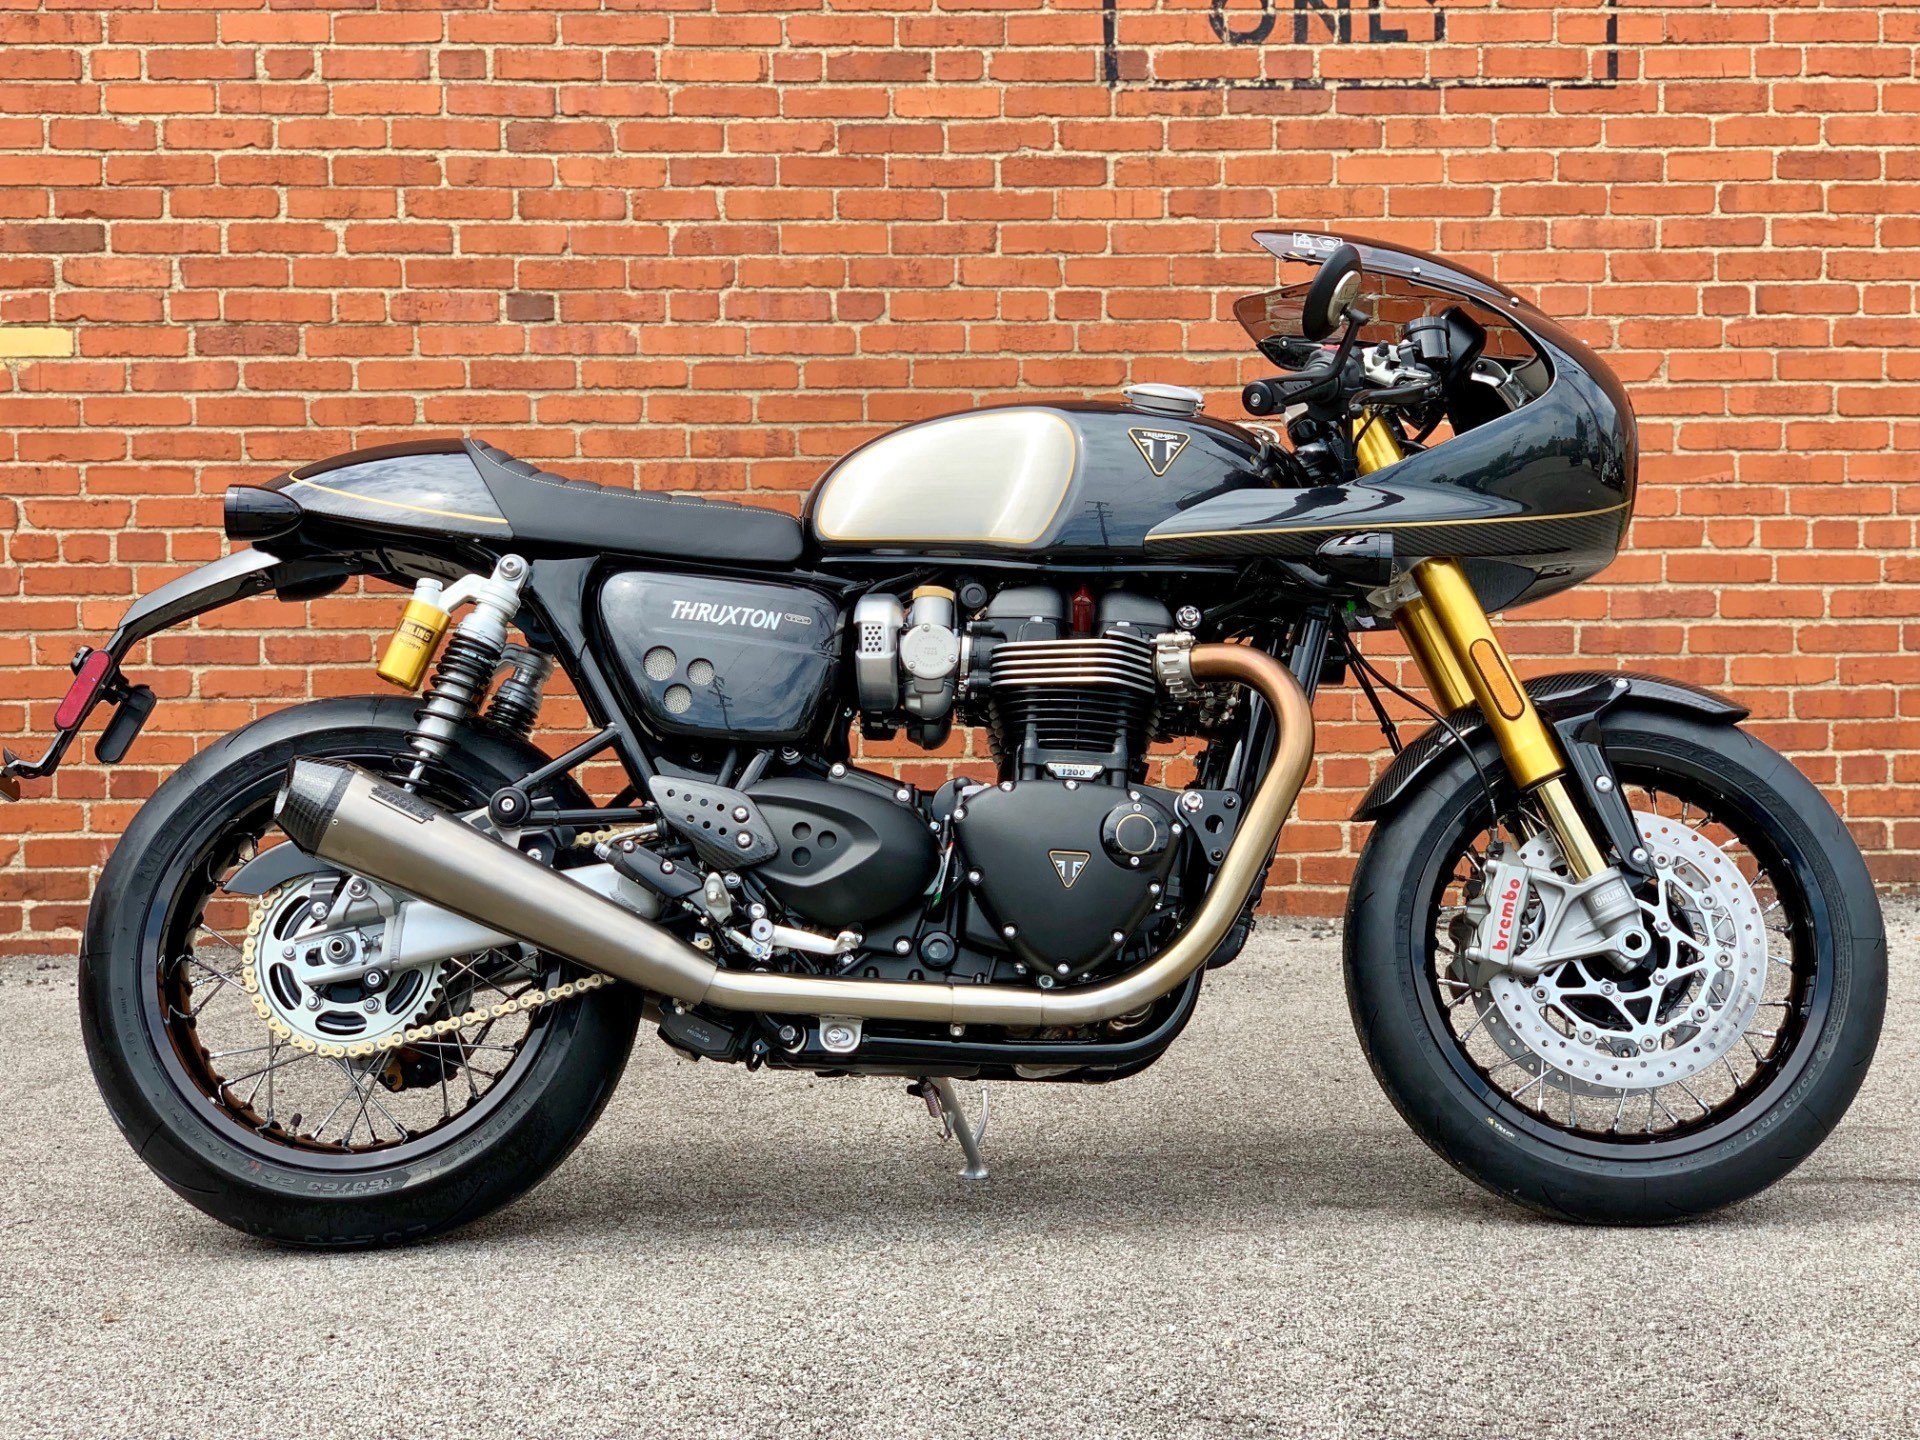 2020 Triumph Thruxton 1200 TFC in Cleveland, Ohio - Photo 1